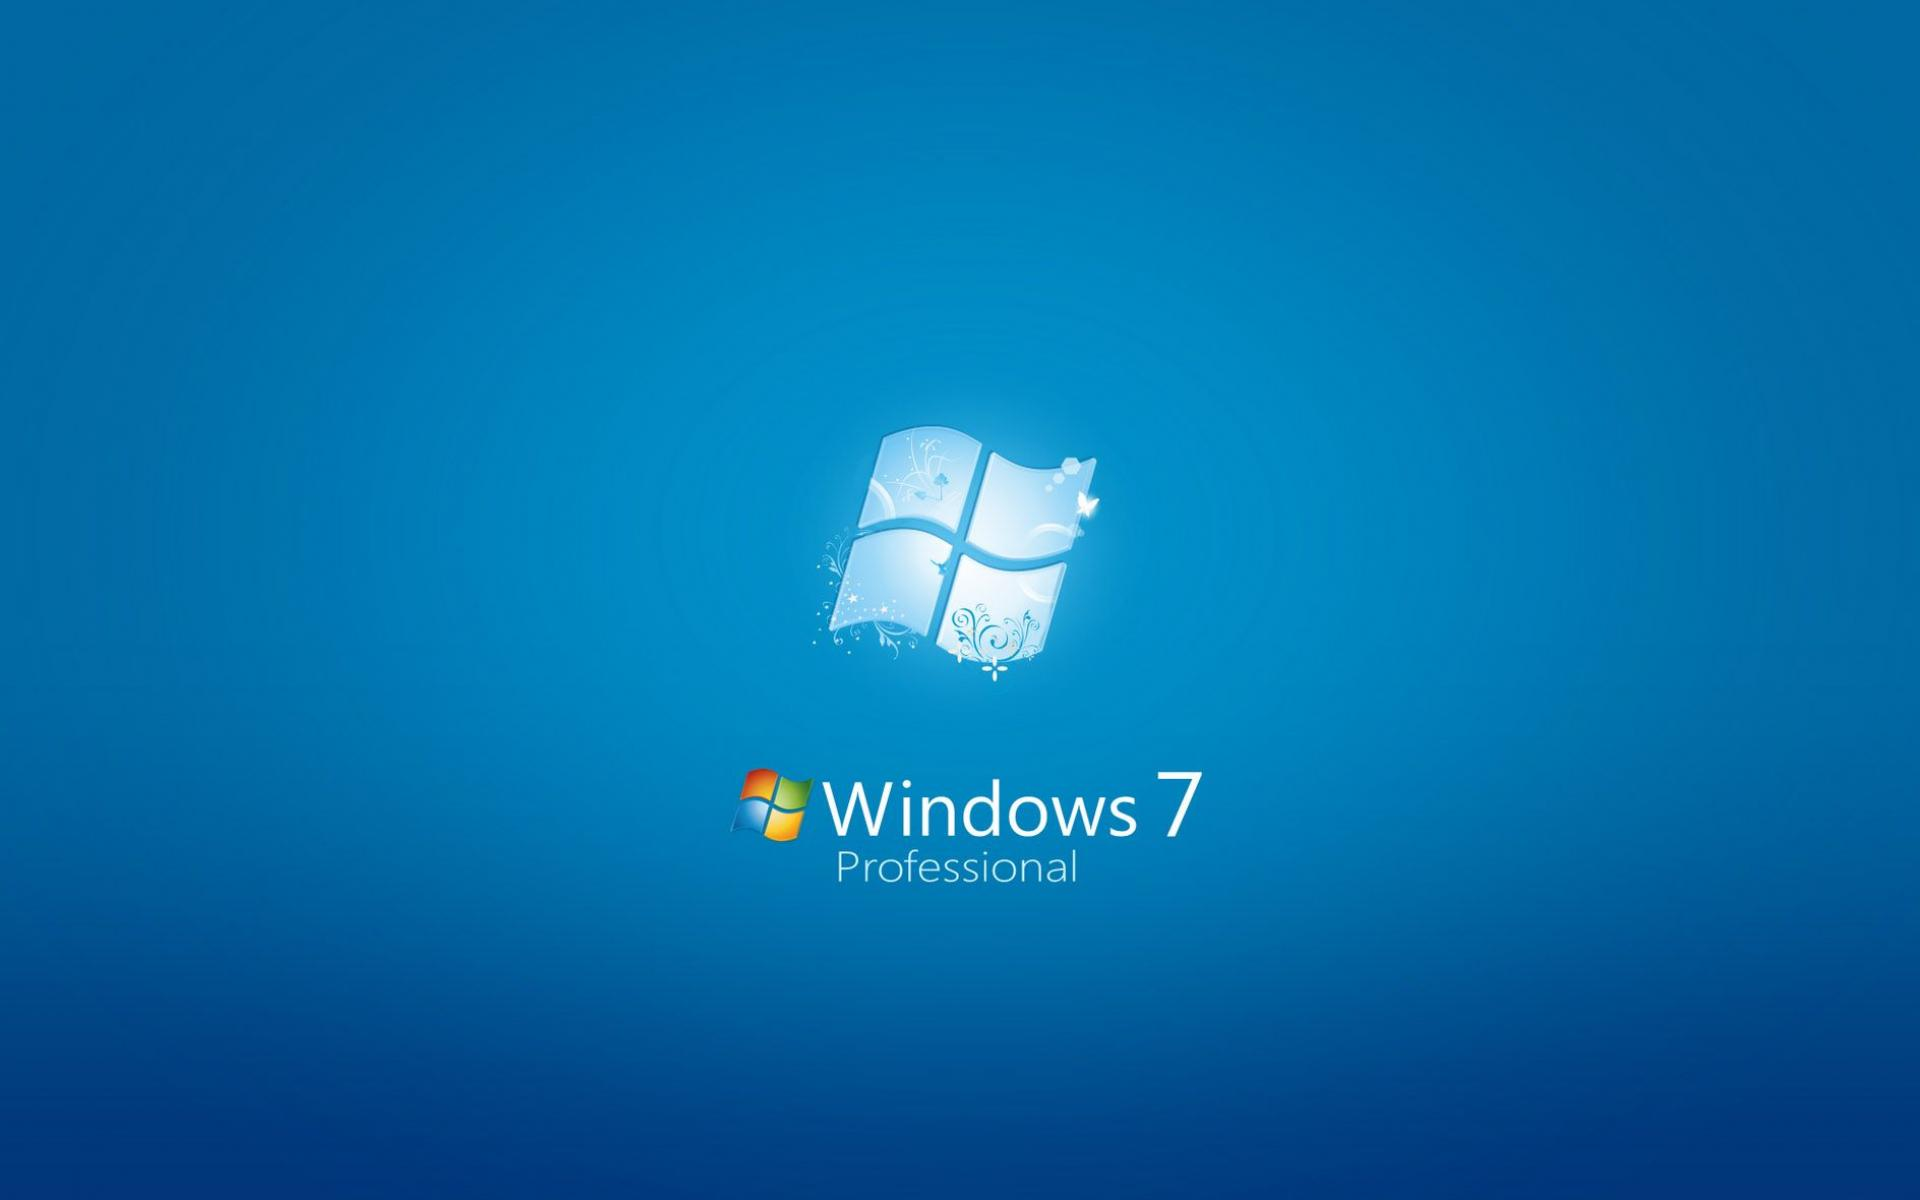 Обои LOGO WINDOWS SEVEN 1920x1200